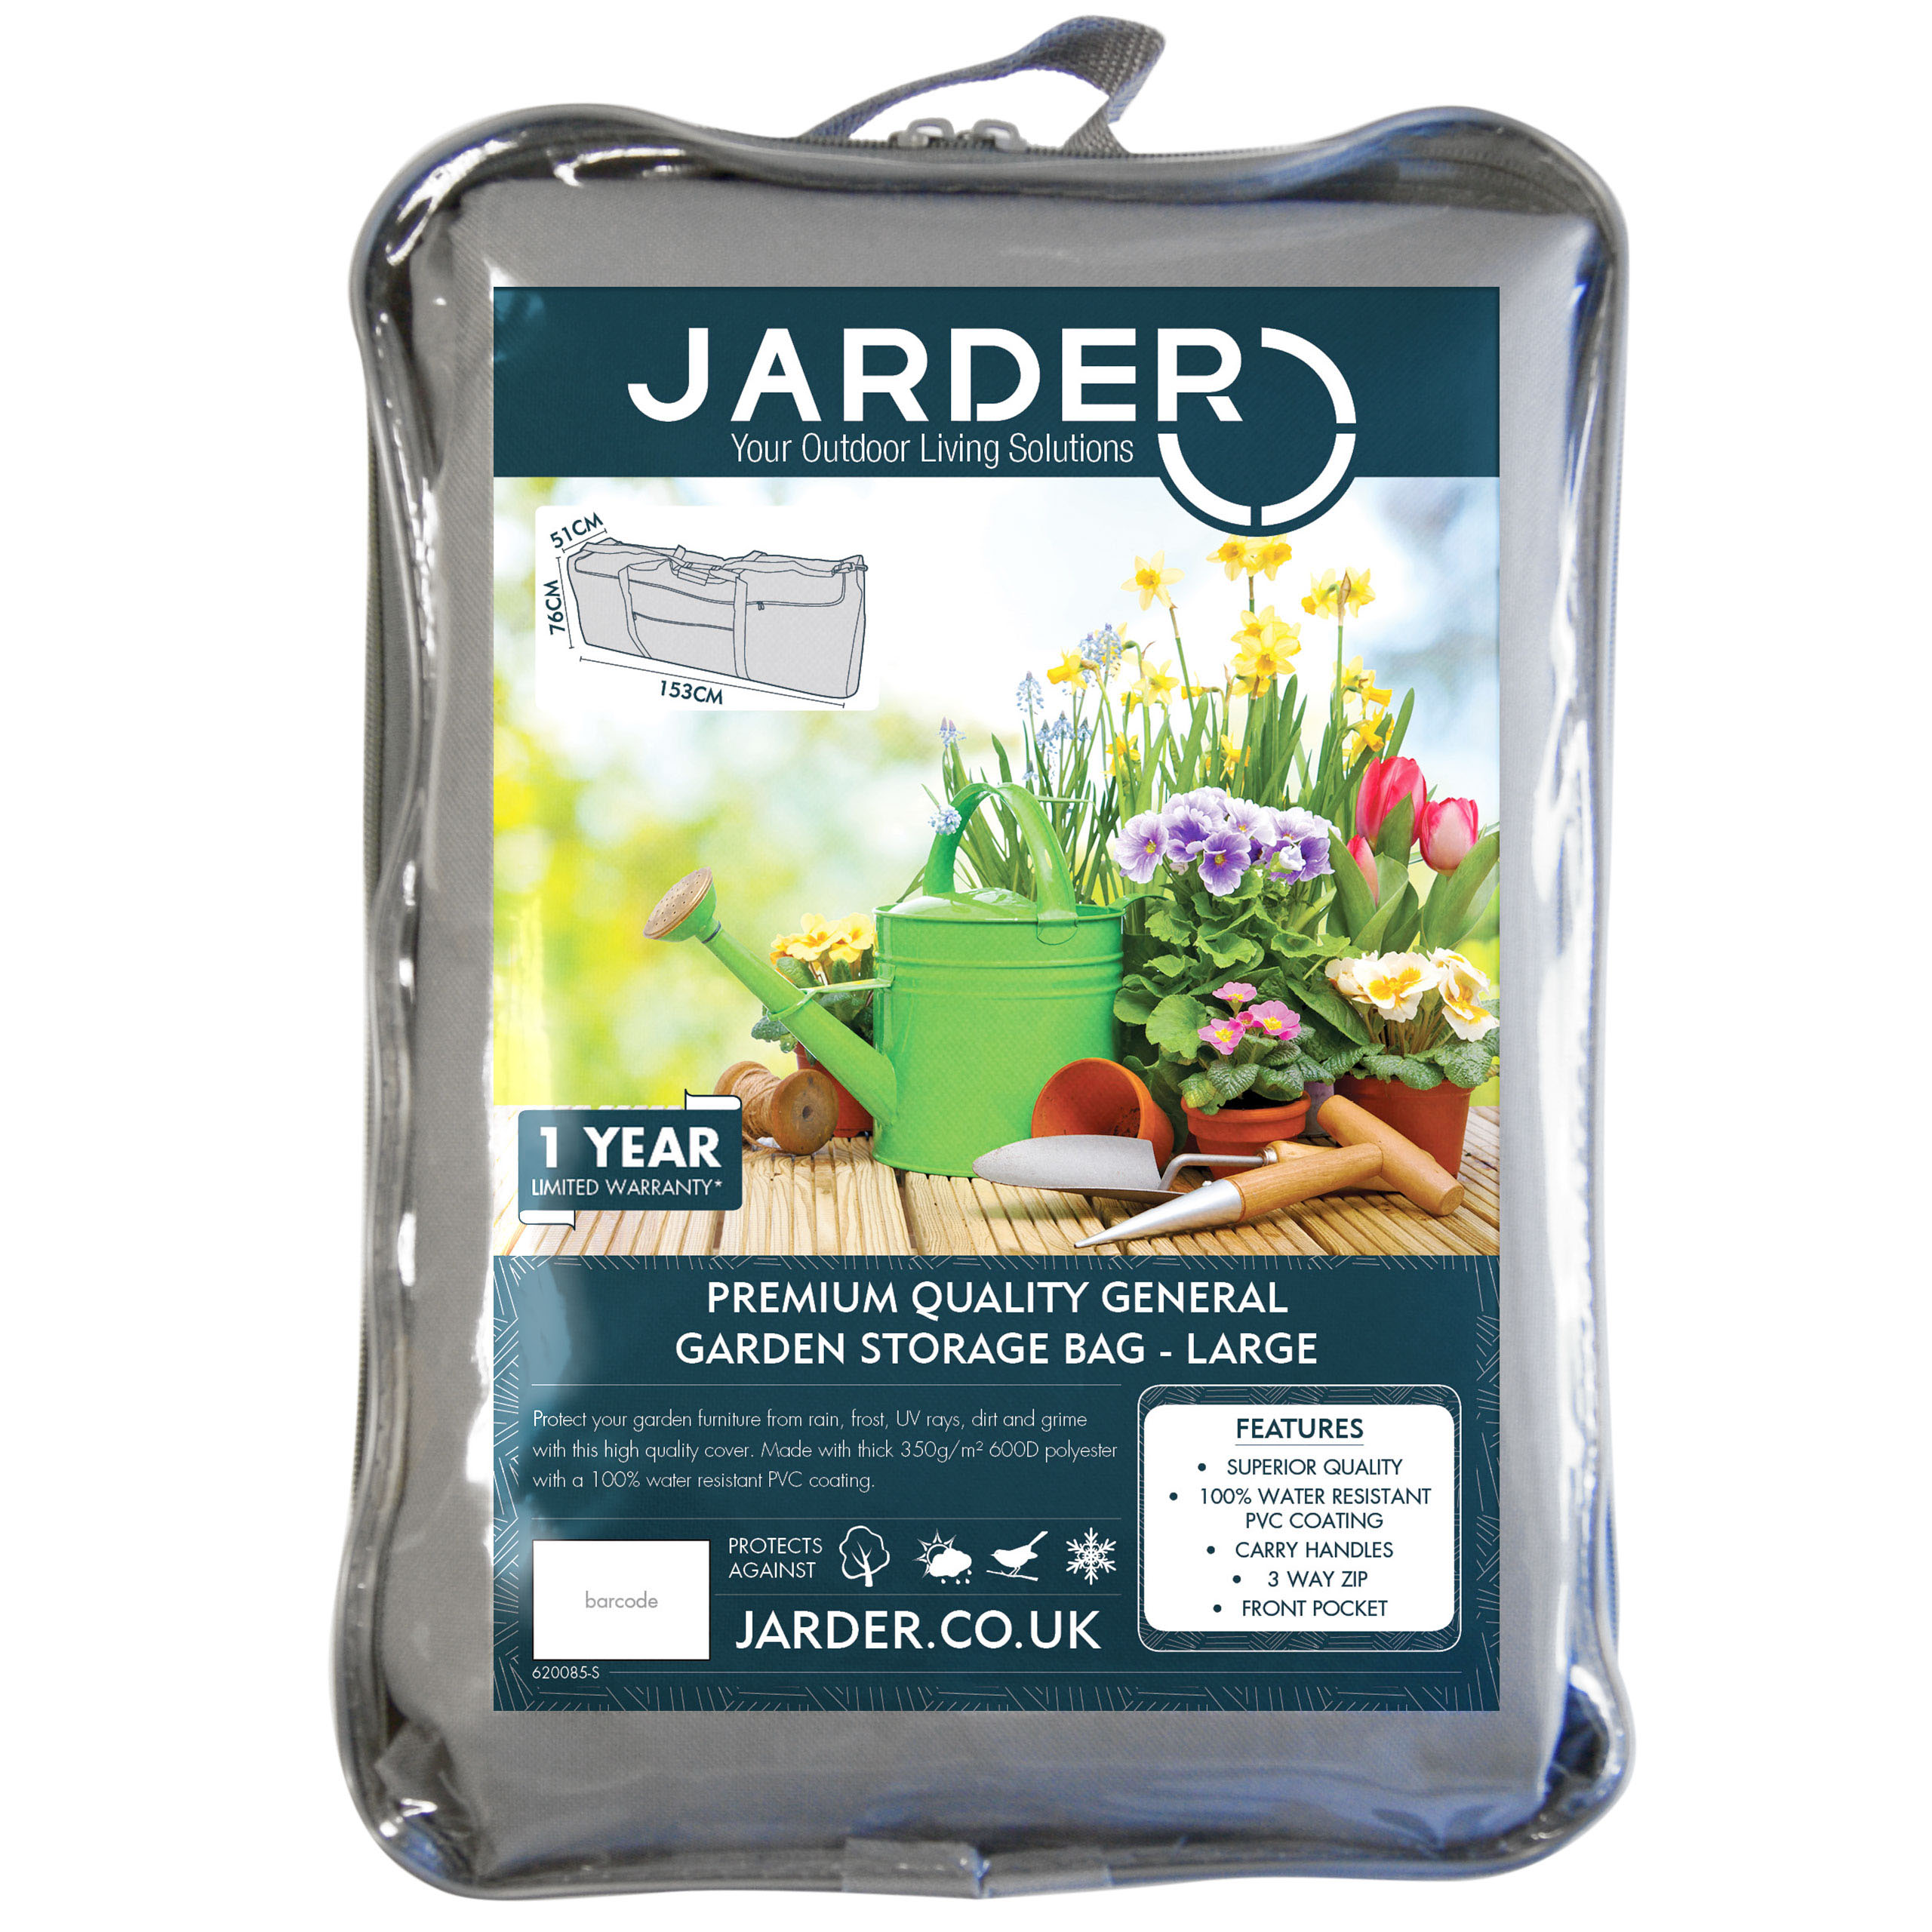 Jarder storage bag